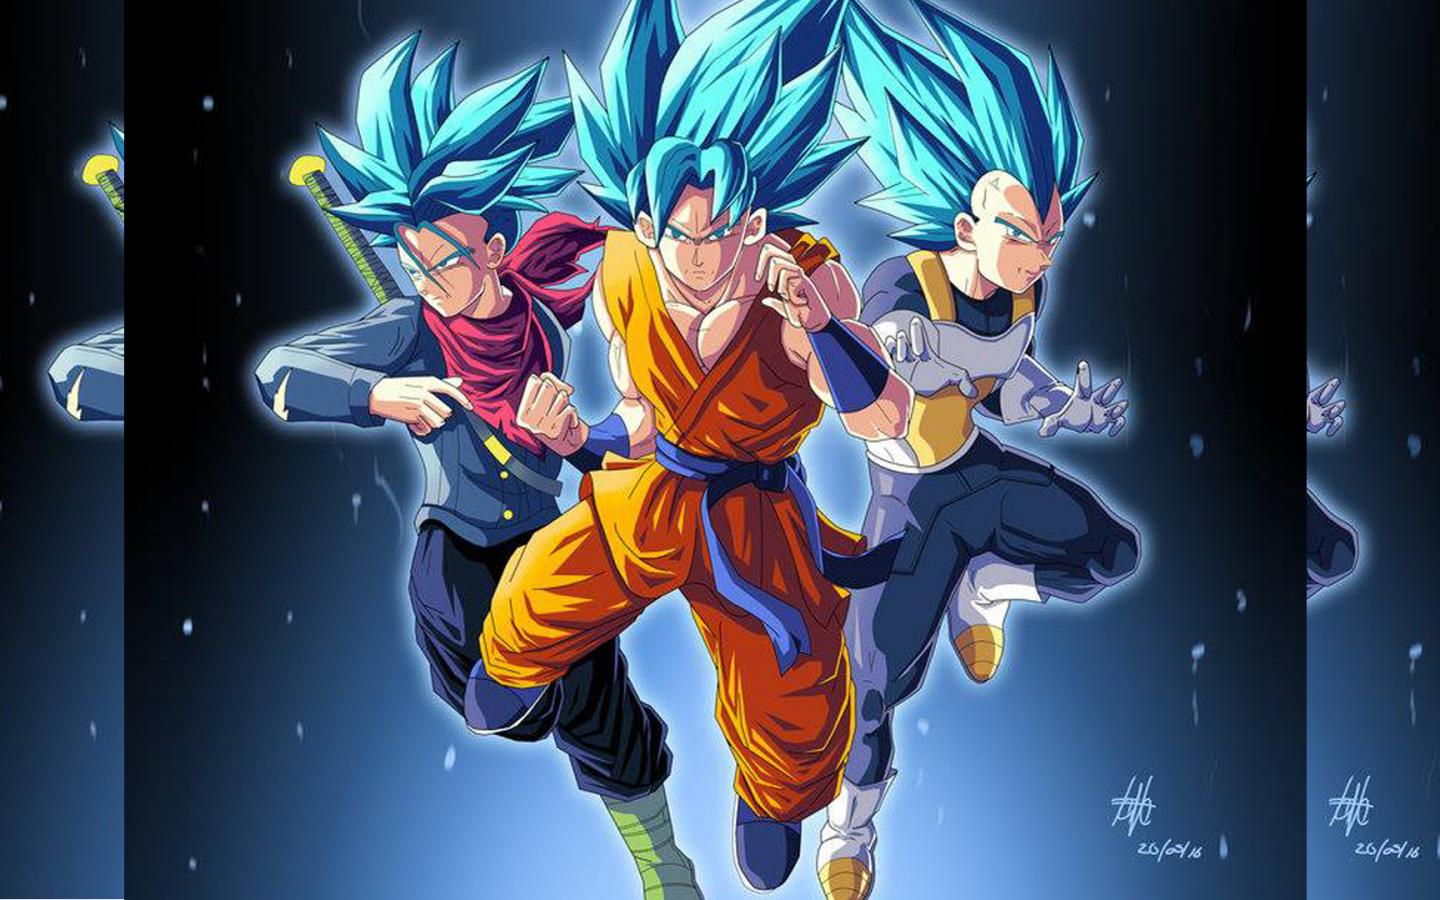 Dragon ball z wallpaper 35 of 49 super saiyan wallpaper trunks goku vegeta hd - Super sayen 10 ...